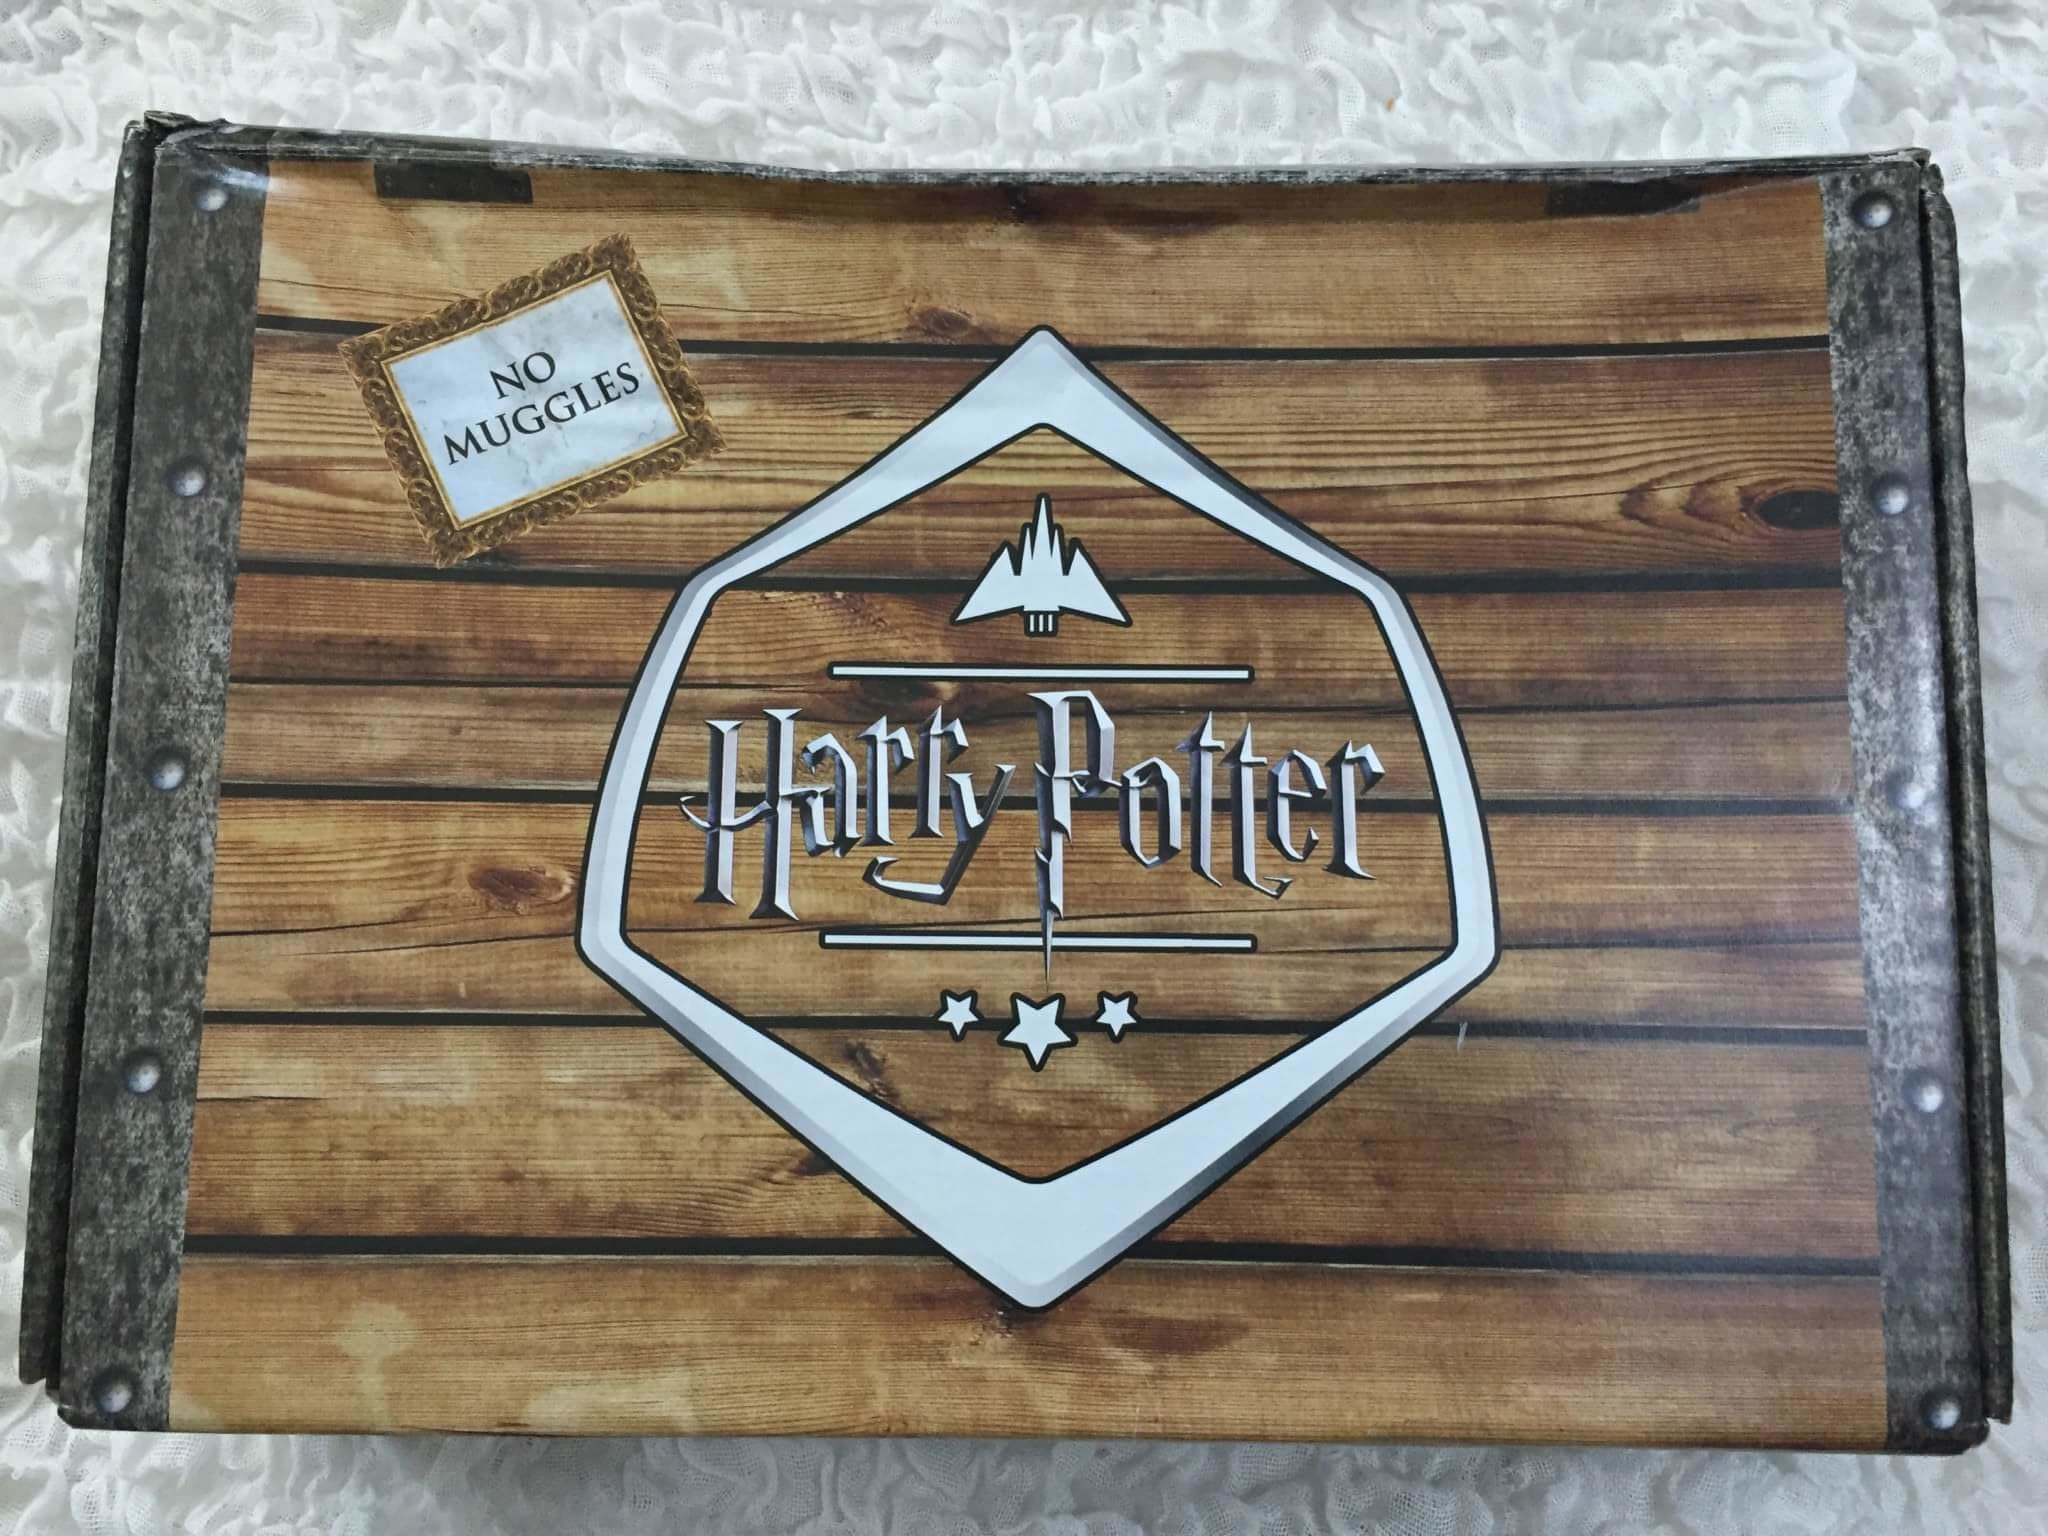 Harry Potter Geek Gear July 2016 Subscription Box Review